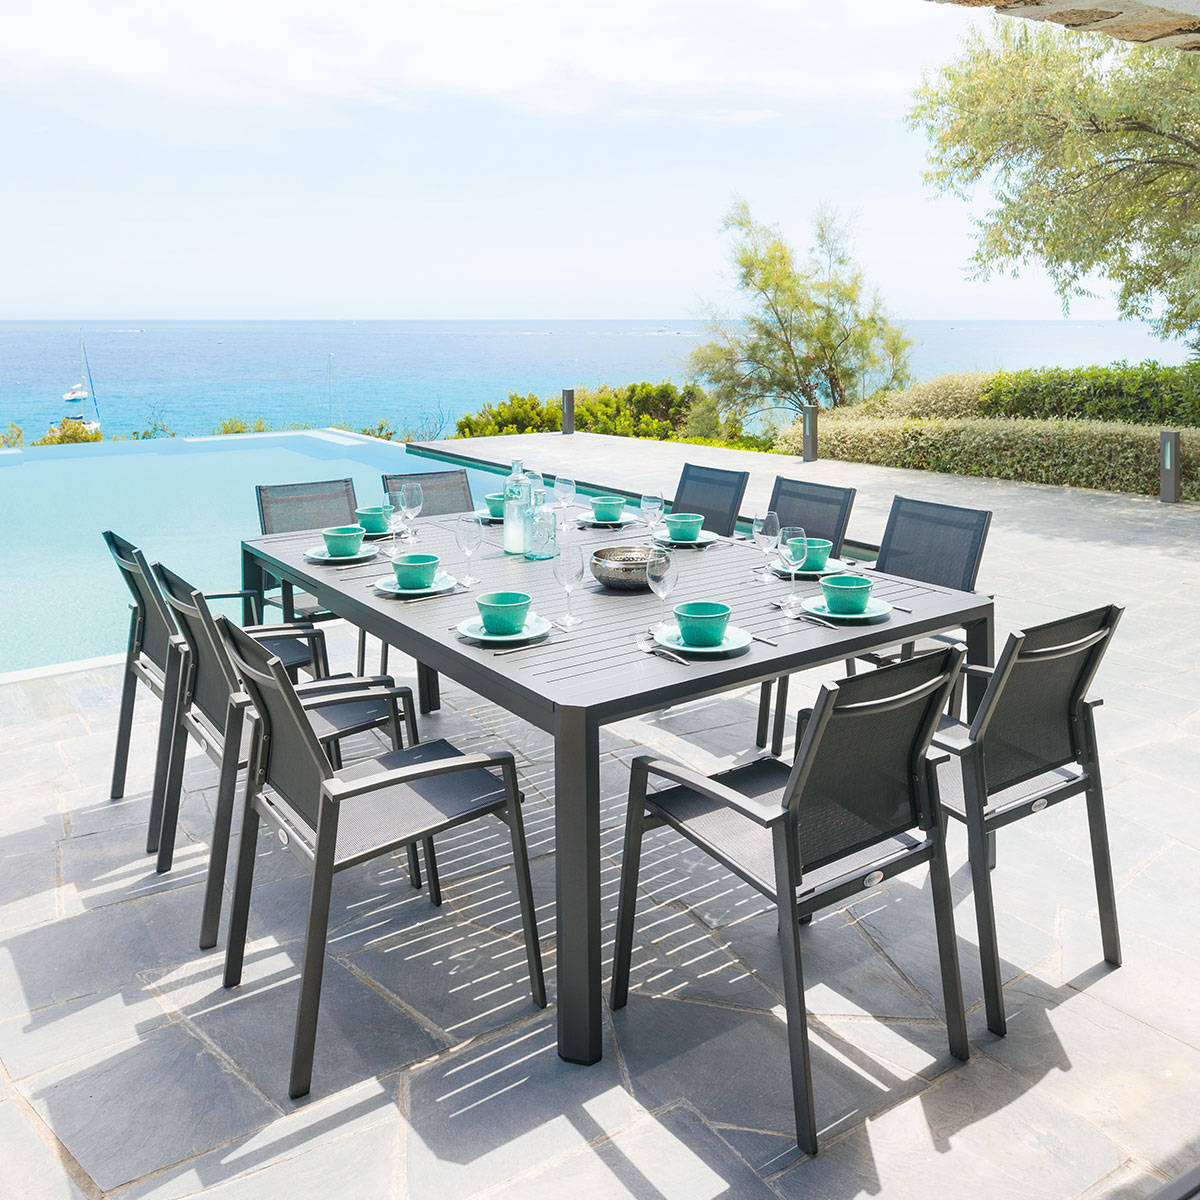 Table de jardin extensible s ville graphite hesp ride 10 places - Table de jardin aluminium ...